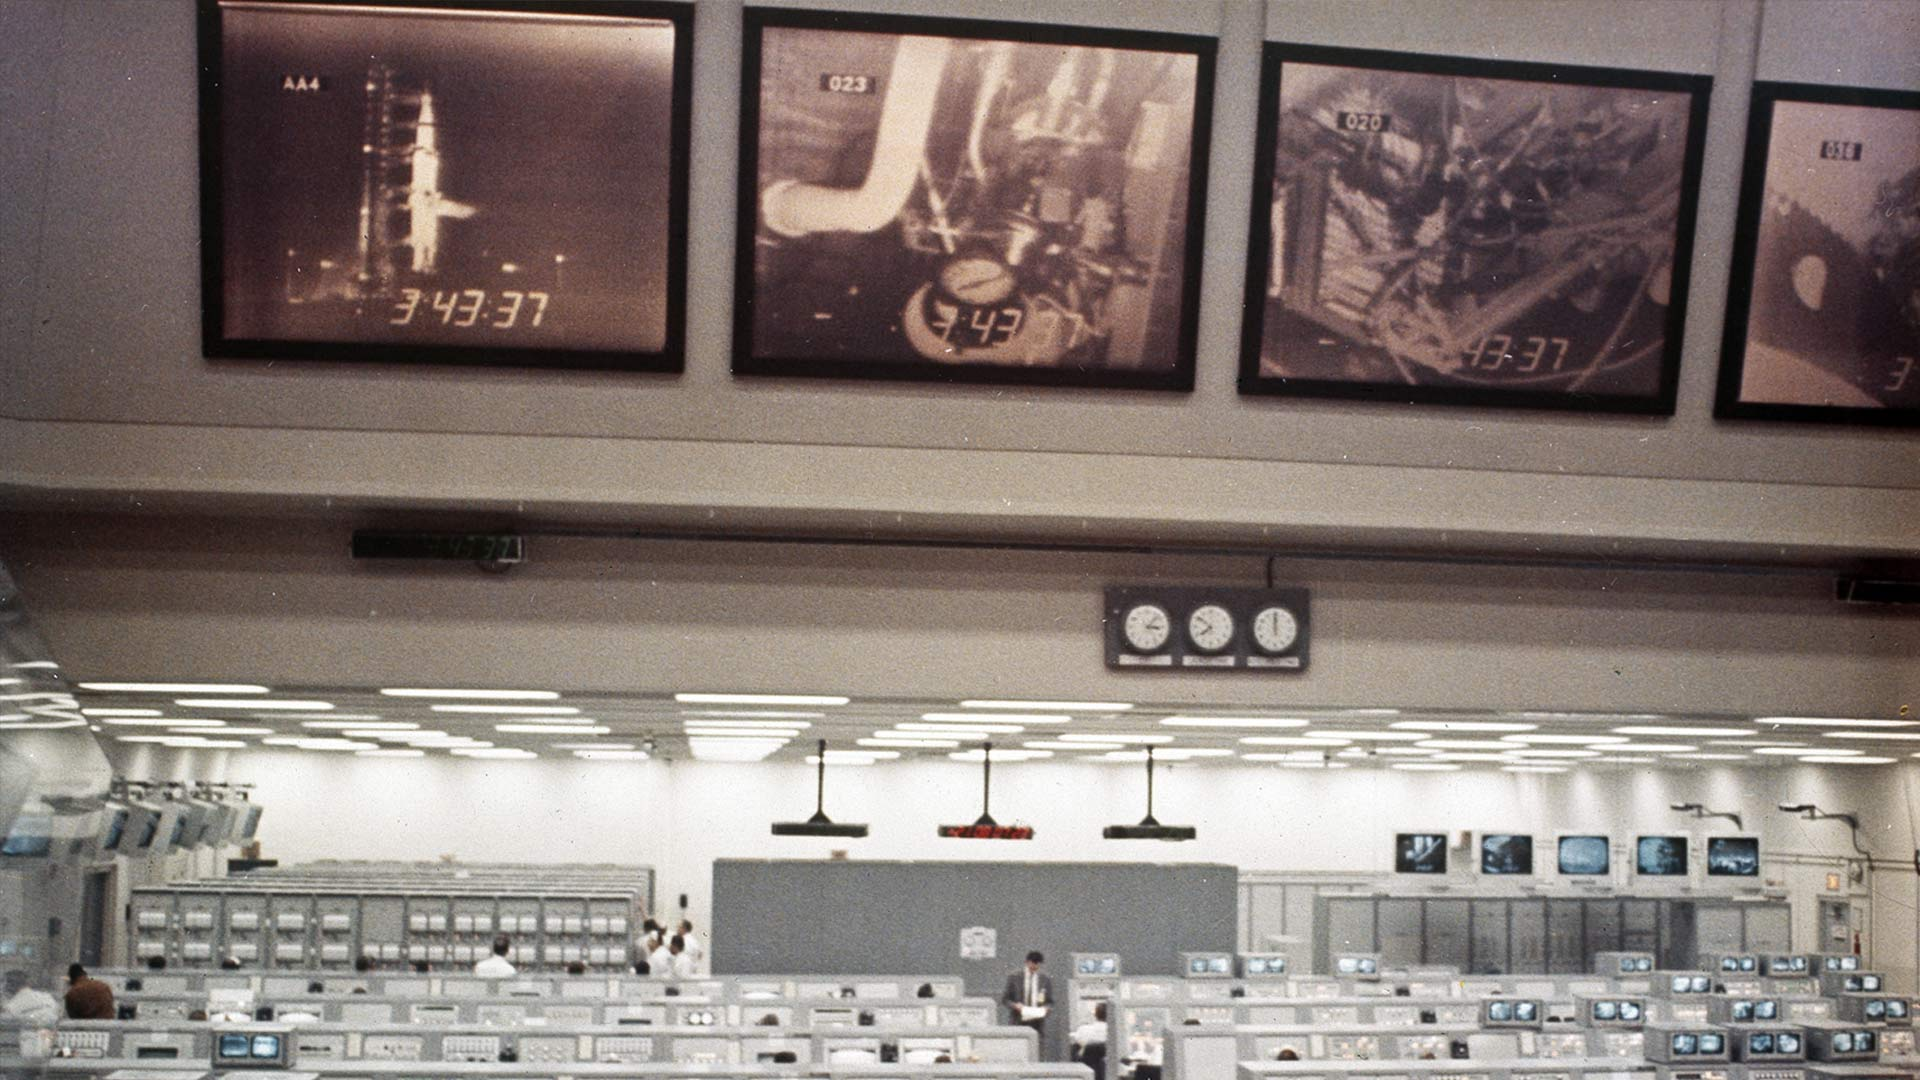 The Apollo 8 mission control room pre-launch, in 1968, at the Kennedy Space Center.